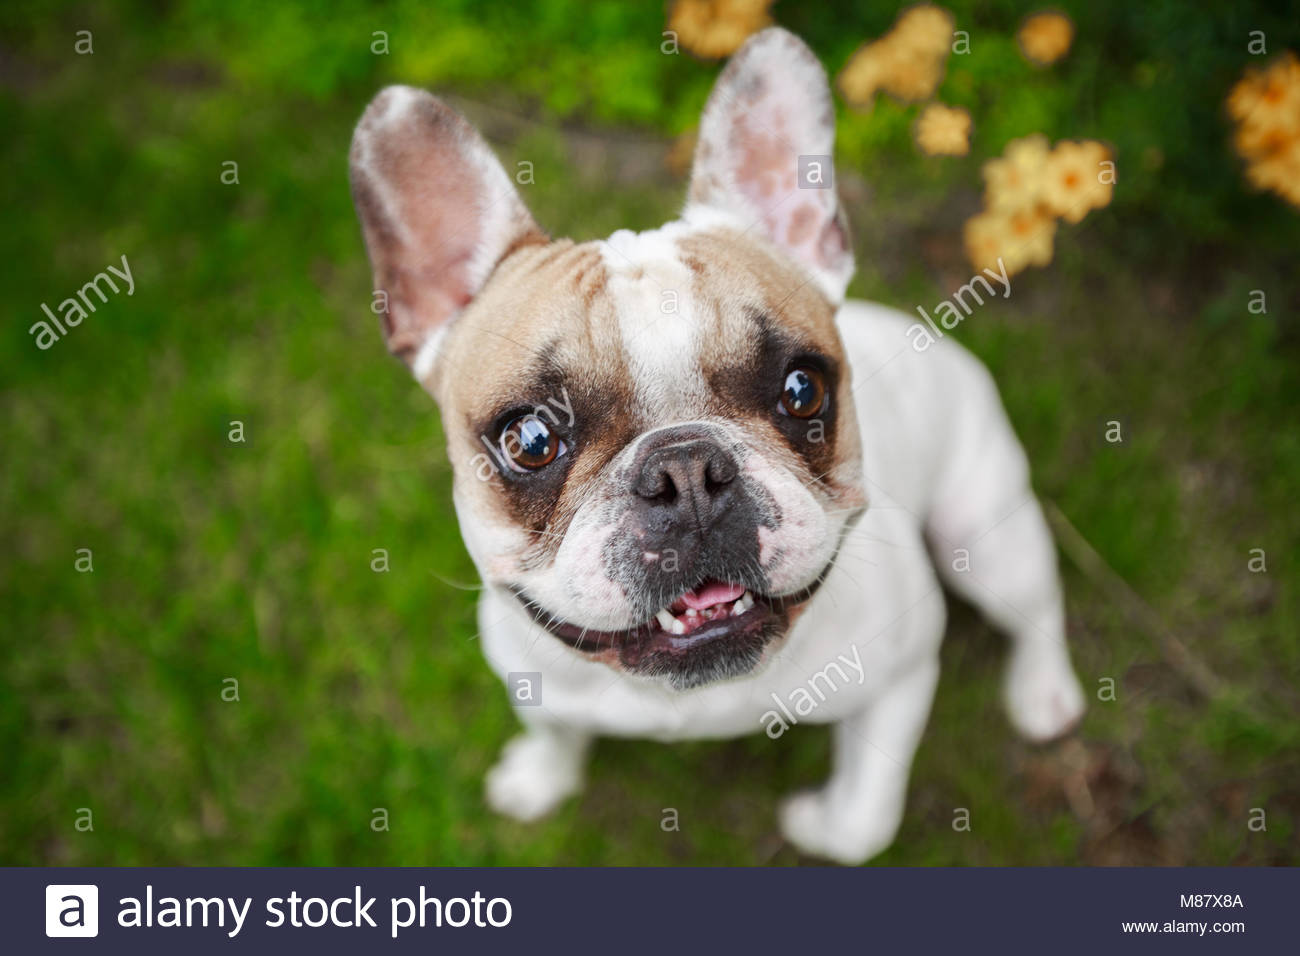 63a5e2c89383 Smiling brown and white French Bulldog Looking up from grass in front of  yellow flowers